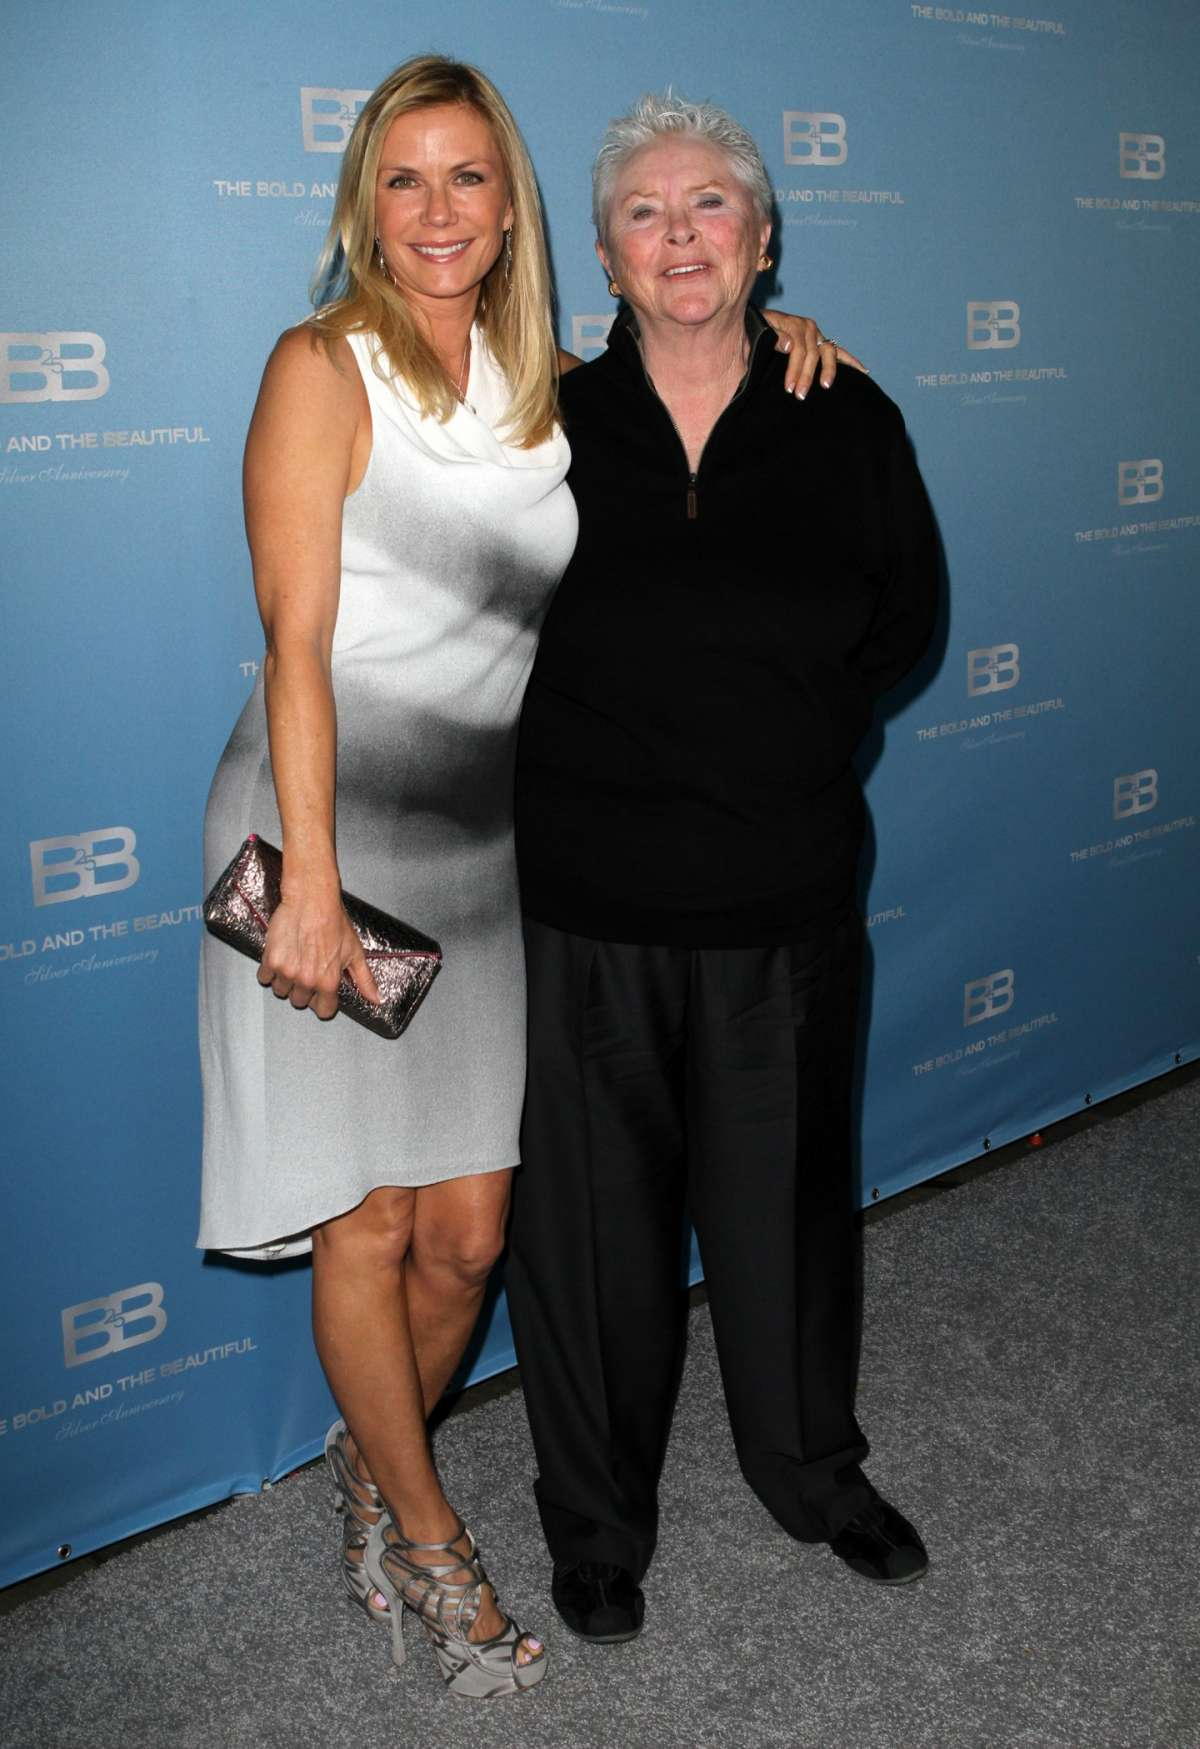 Brooke e Stephanie al 25esimo anniversario di Beautiful nel 2012 a Los Angeles